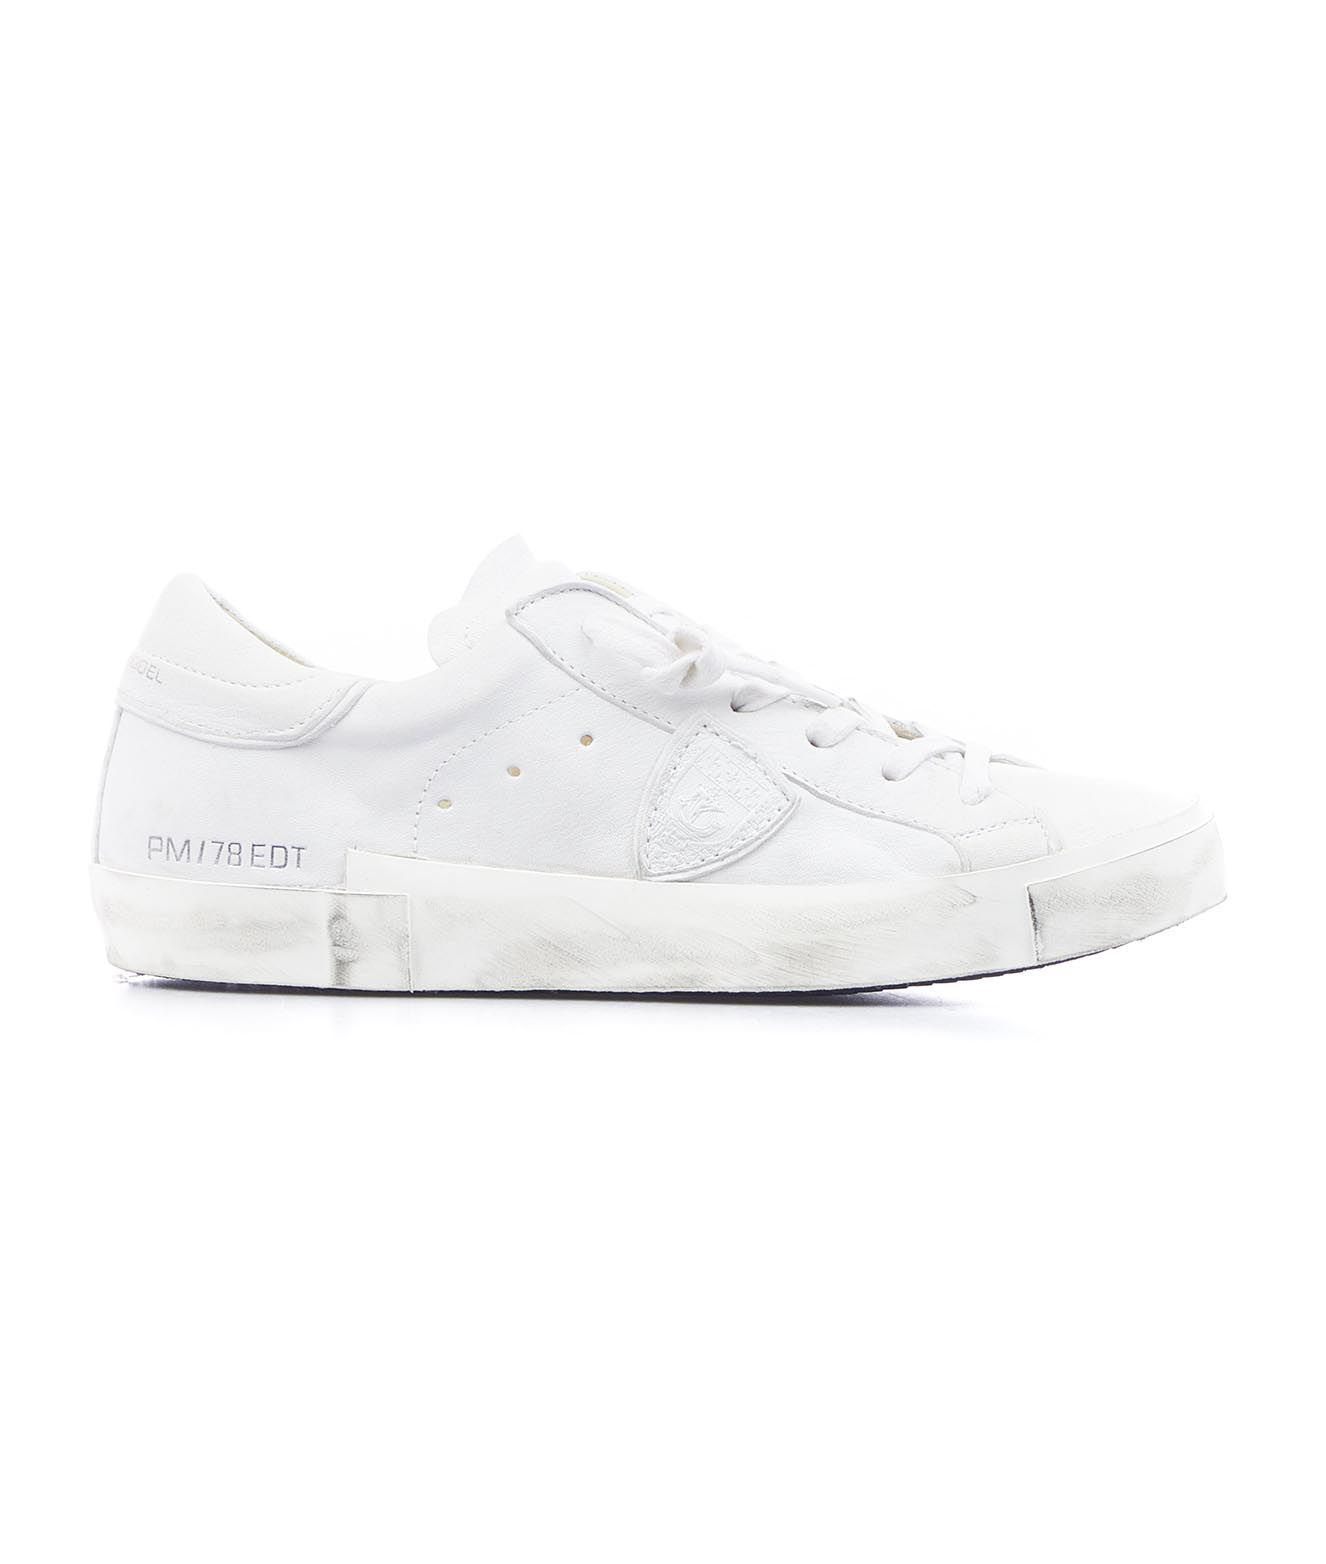 Philippe Model PHILIPPE MODEL WOMEN'S PRLD1012 WHITE OTHER MATERIALS SNEAKERS